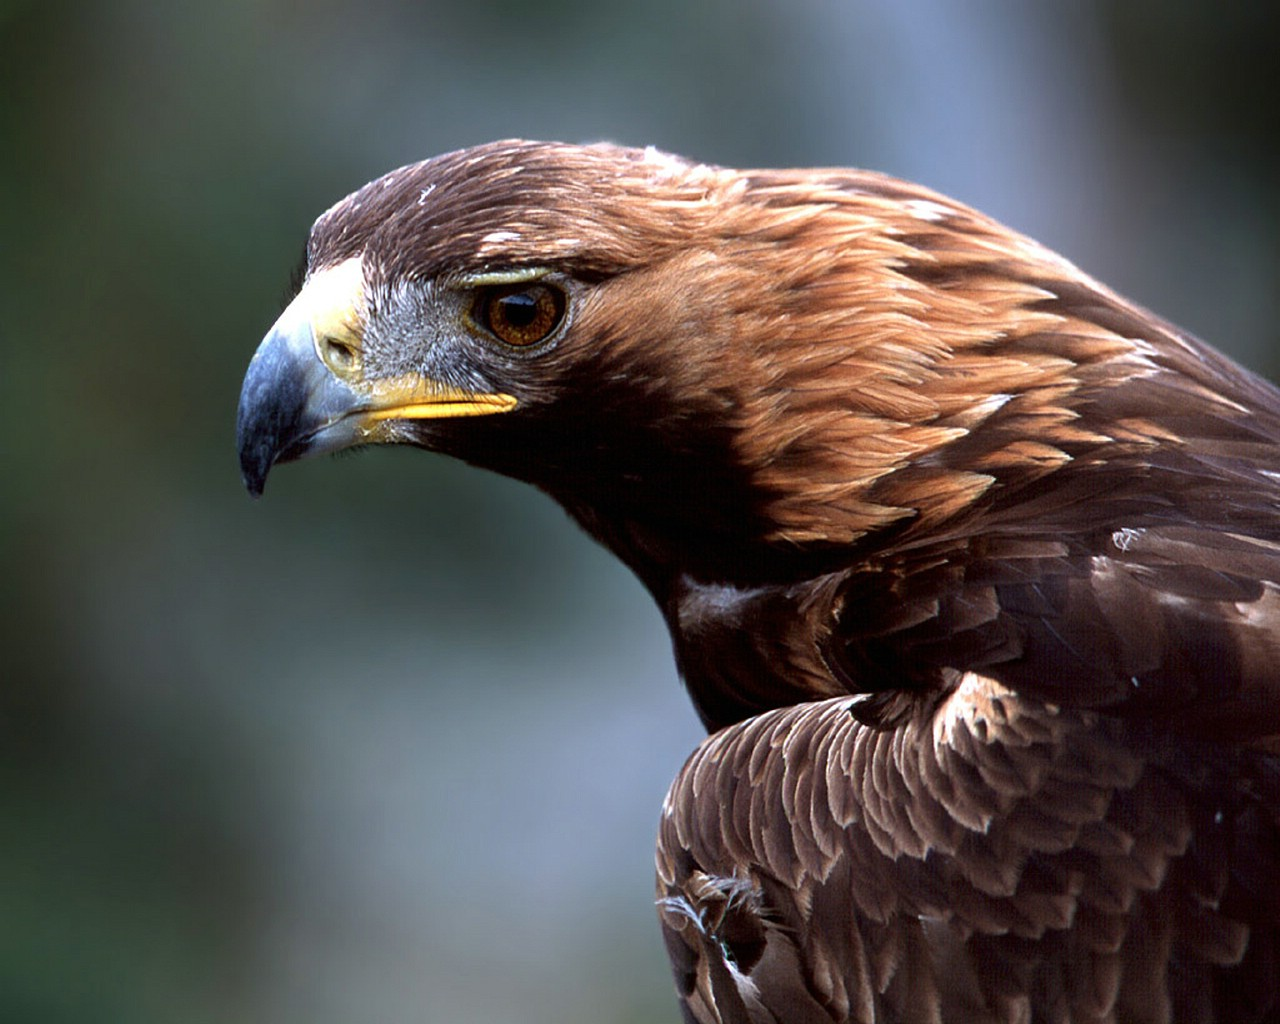 Wallpaper Love Hurts Sad Hd Hd Wallpapers Golden Eagles